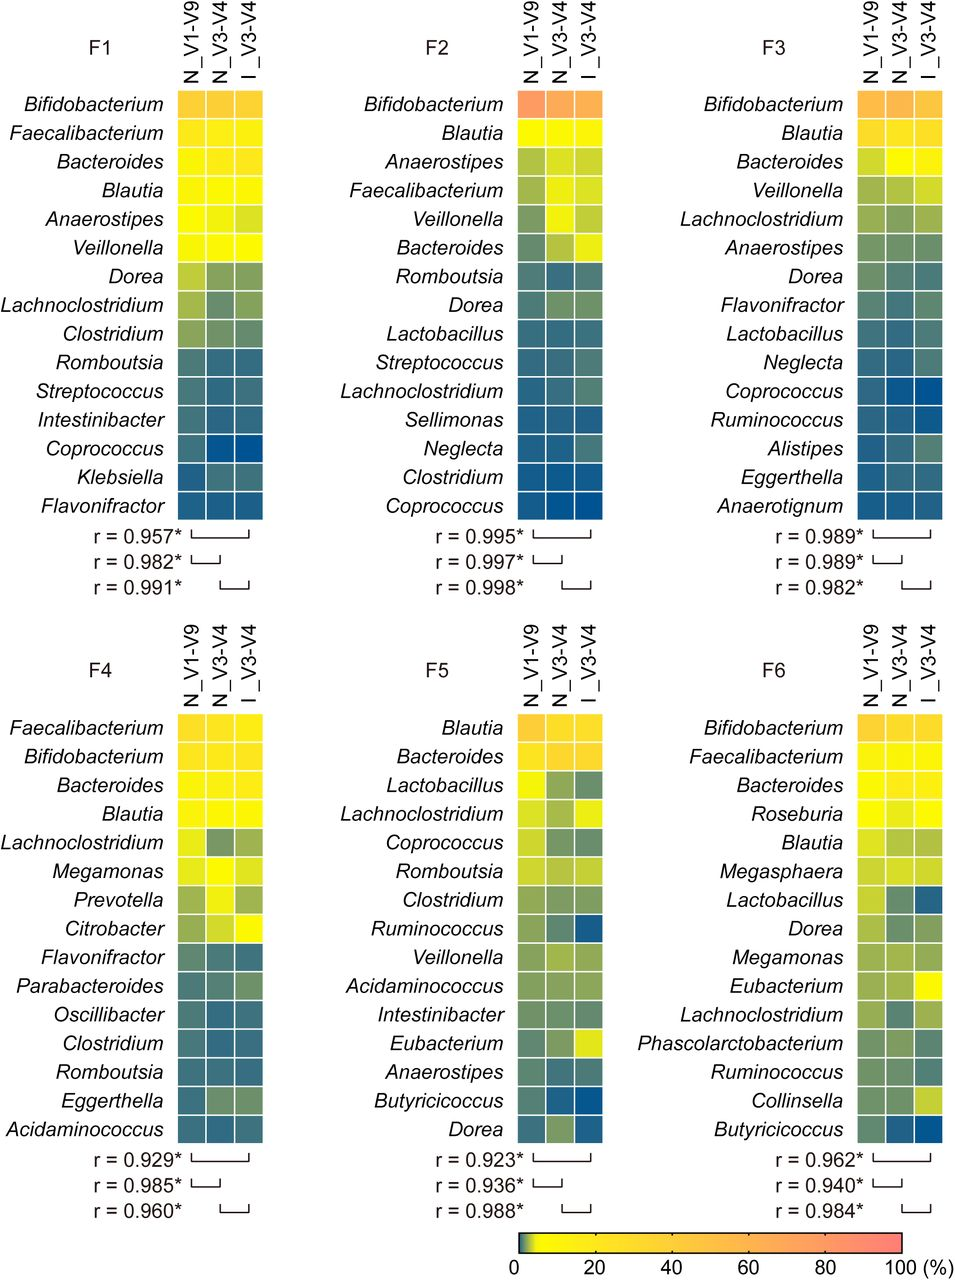 Comparison of taxonomic profiles of human gut microbiota between sequencing methodologies. Six fecal samples (F1-F6) were analyzed by sequencing the entire 16S rRNA gene using MinION™ (N_V1-V9). For comparison, the V3-V4 region was sequenced on MinION™ (N_V3-V4) or MiSeq™ platforms (I_V1-V9). Randomly sampled 20000 reads from each data set were allocated to the reference genome database of 5850 representative bacterial species. A heat map shows the relative genus abundance (%) of classified reads. The 15 most abundant taxa are shown. The Pearson correlation coefficient ( r ) between sequencing methods was computed. Asterisks indicate significant correlations at P